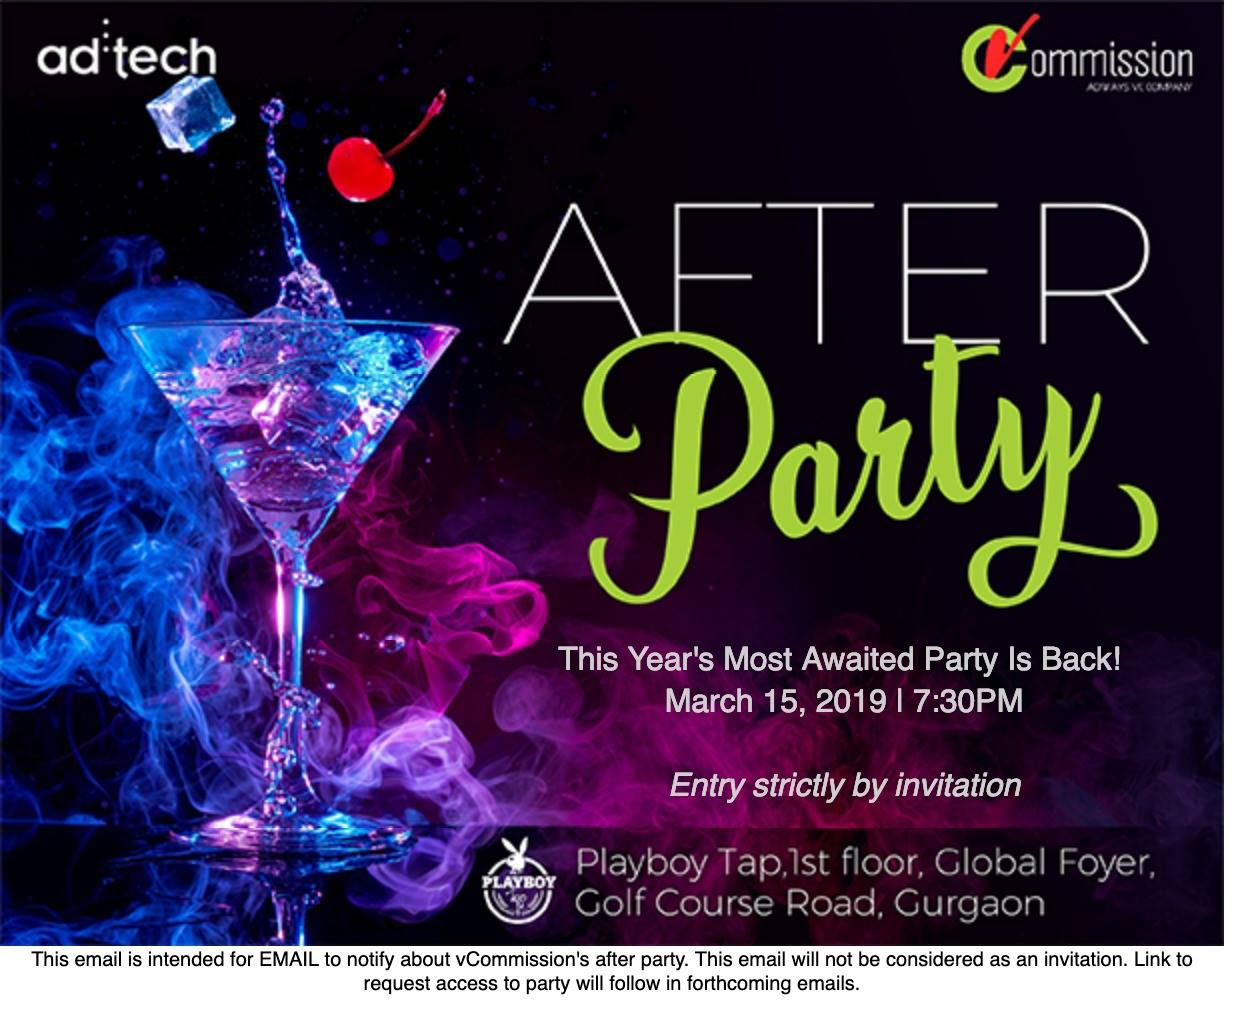 Adtech : AFTER PARTY by vCommission